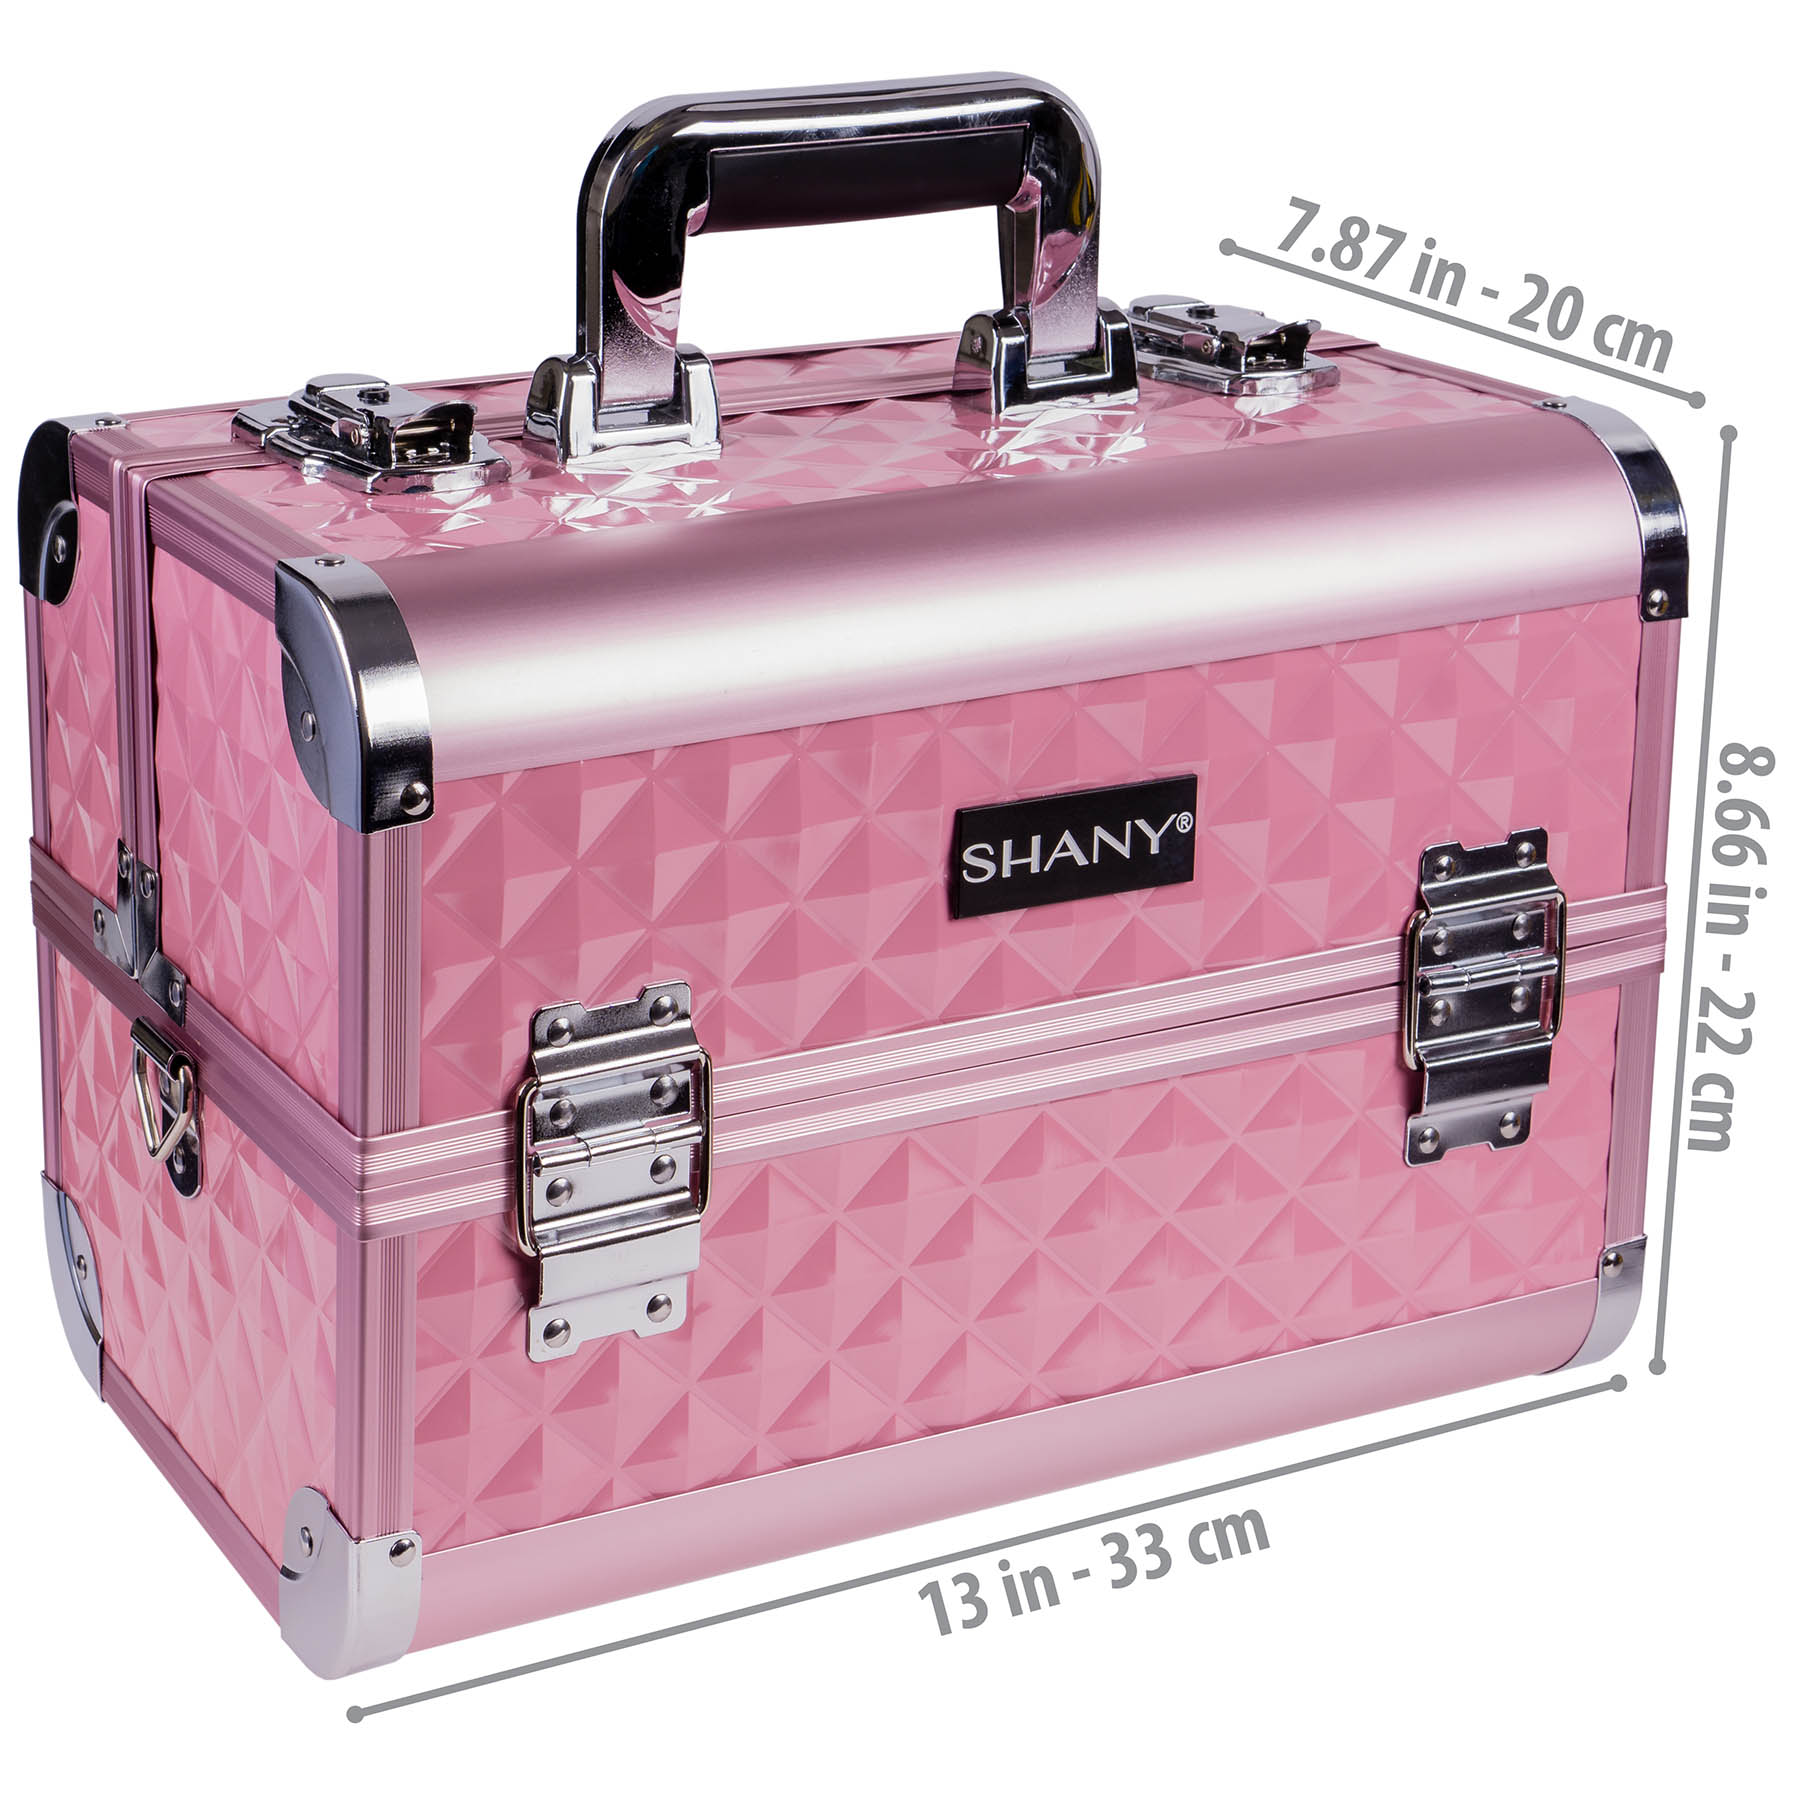 SHANY-Fantasy-Collection-Makeup-Artists-Cosmetics-Train-Case miniature 38